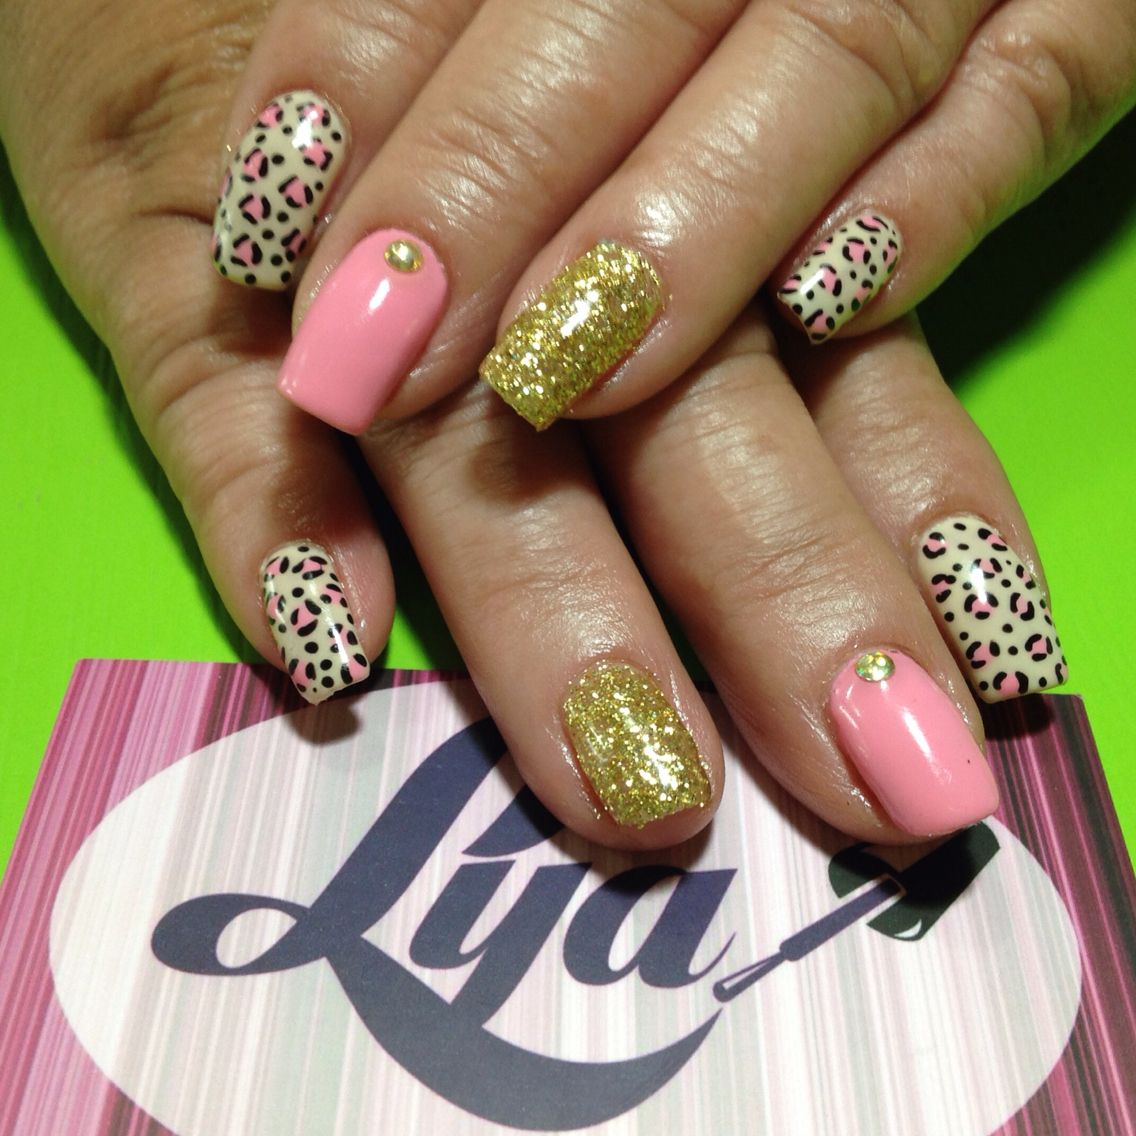 Decorado de uñas Gelish animal print con glitter. #gelish ...